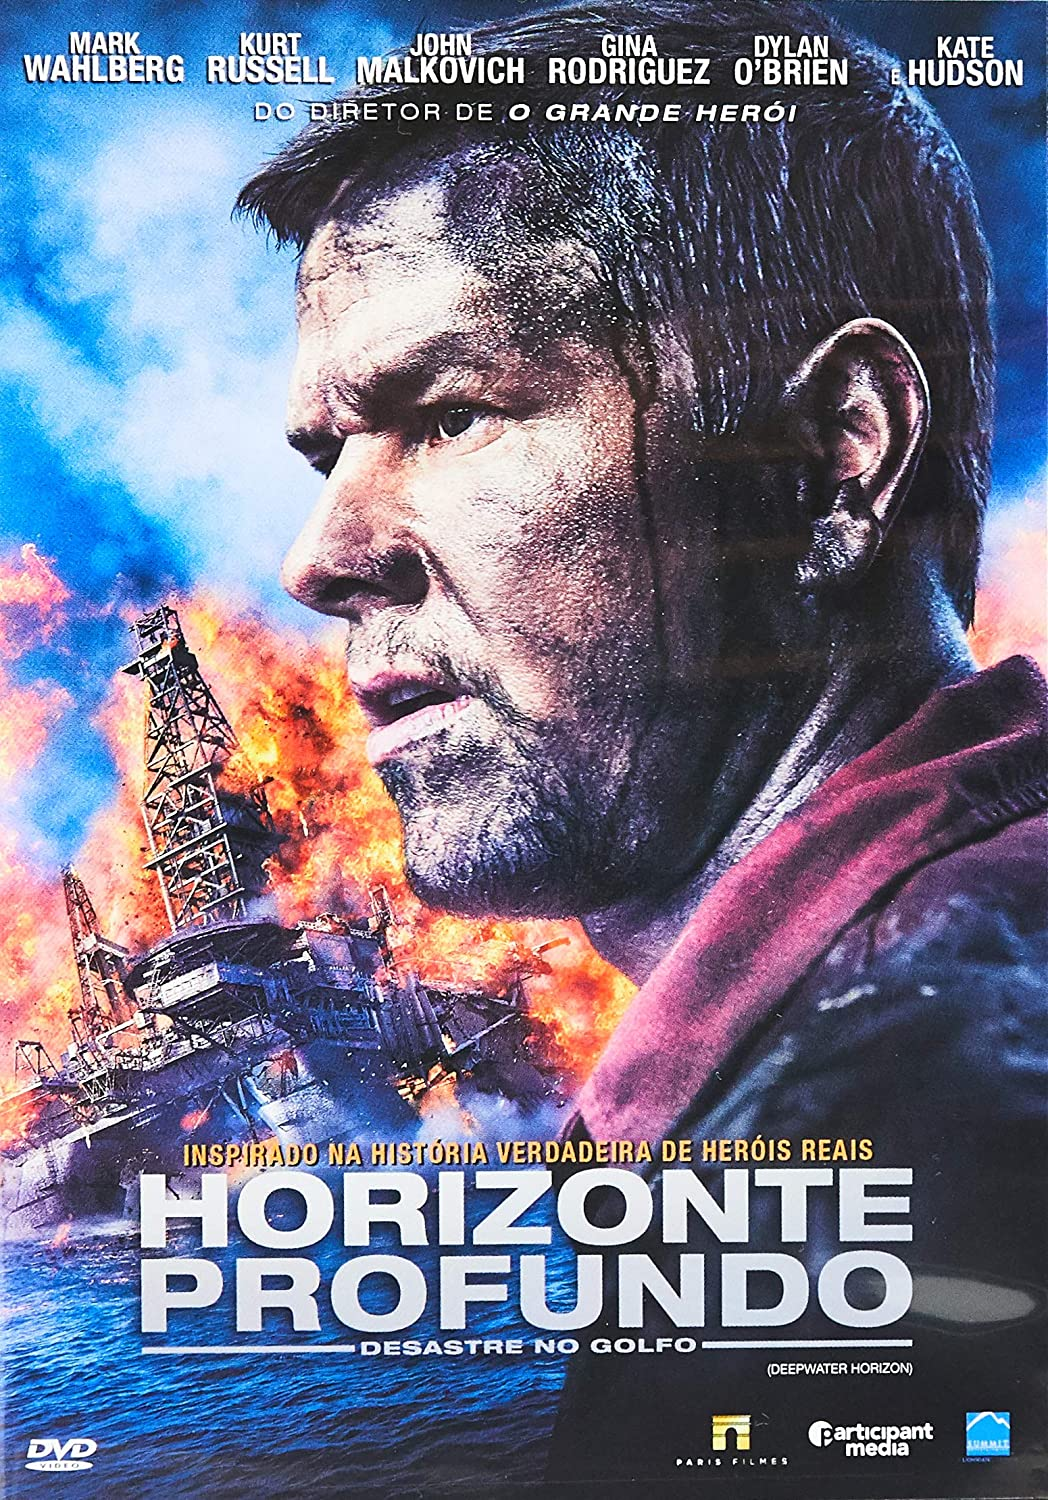 Horizonte Profundo: Desastre No Golfo Bd: Mark Wahlberg, Dylan O'Brien,  Kate Hudson, Peter Berg: Amazon.com.br: DVD e Blu-ray